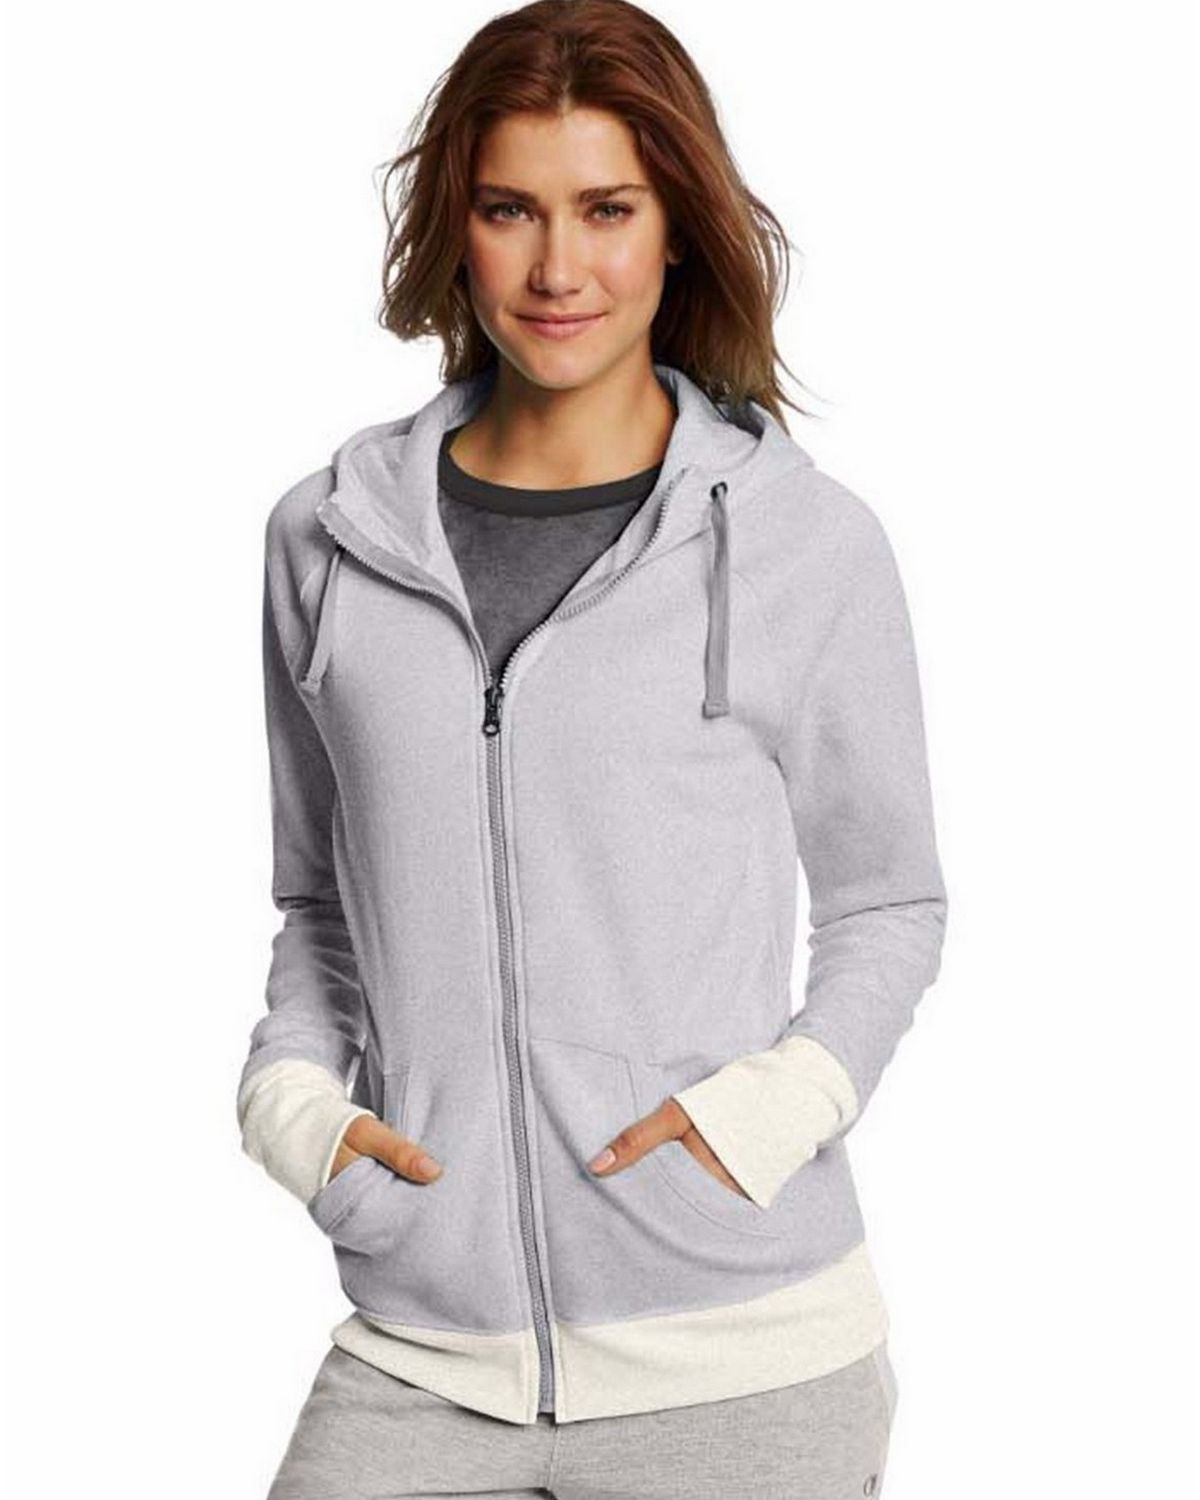 Champion W0933 Womens Fleece Full Zip Hoodie - Oxford Heather/Oatmeal Heather - L W0933